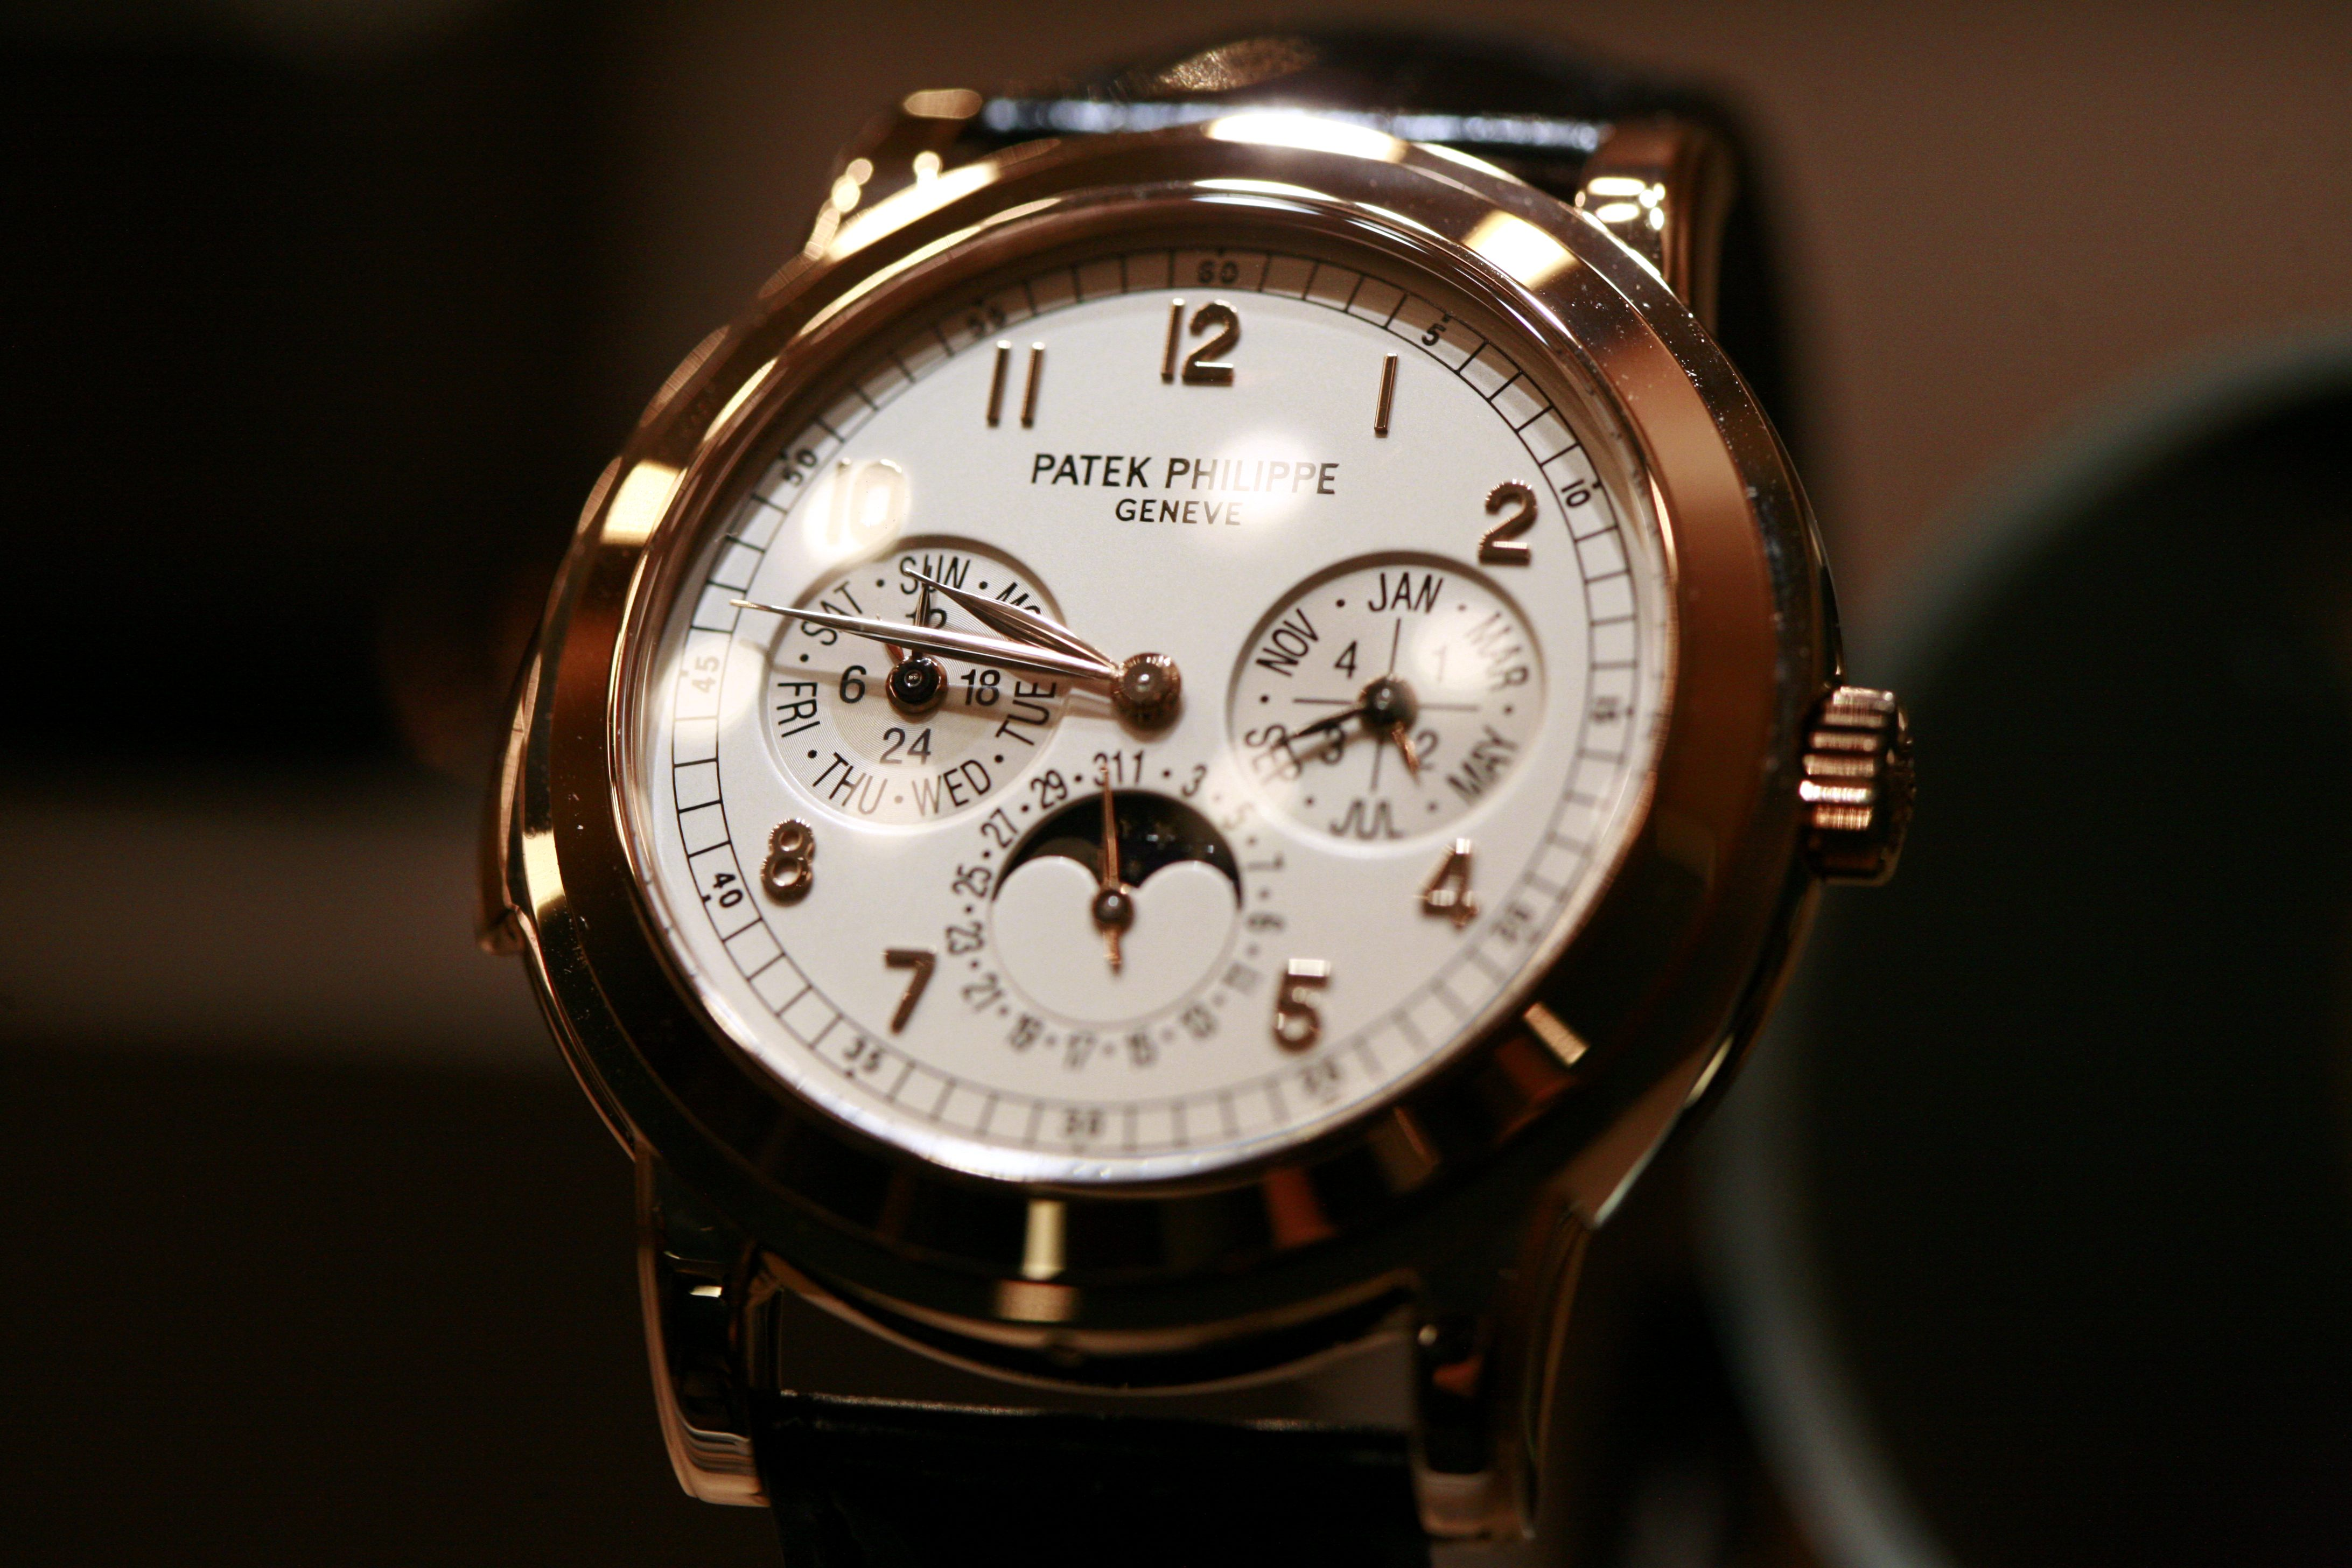 The History Behind the Patek Philippe Watches  CapeLux.com